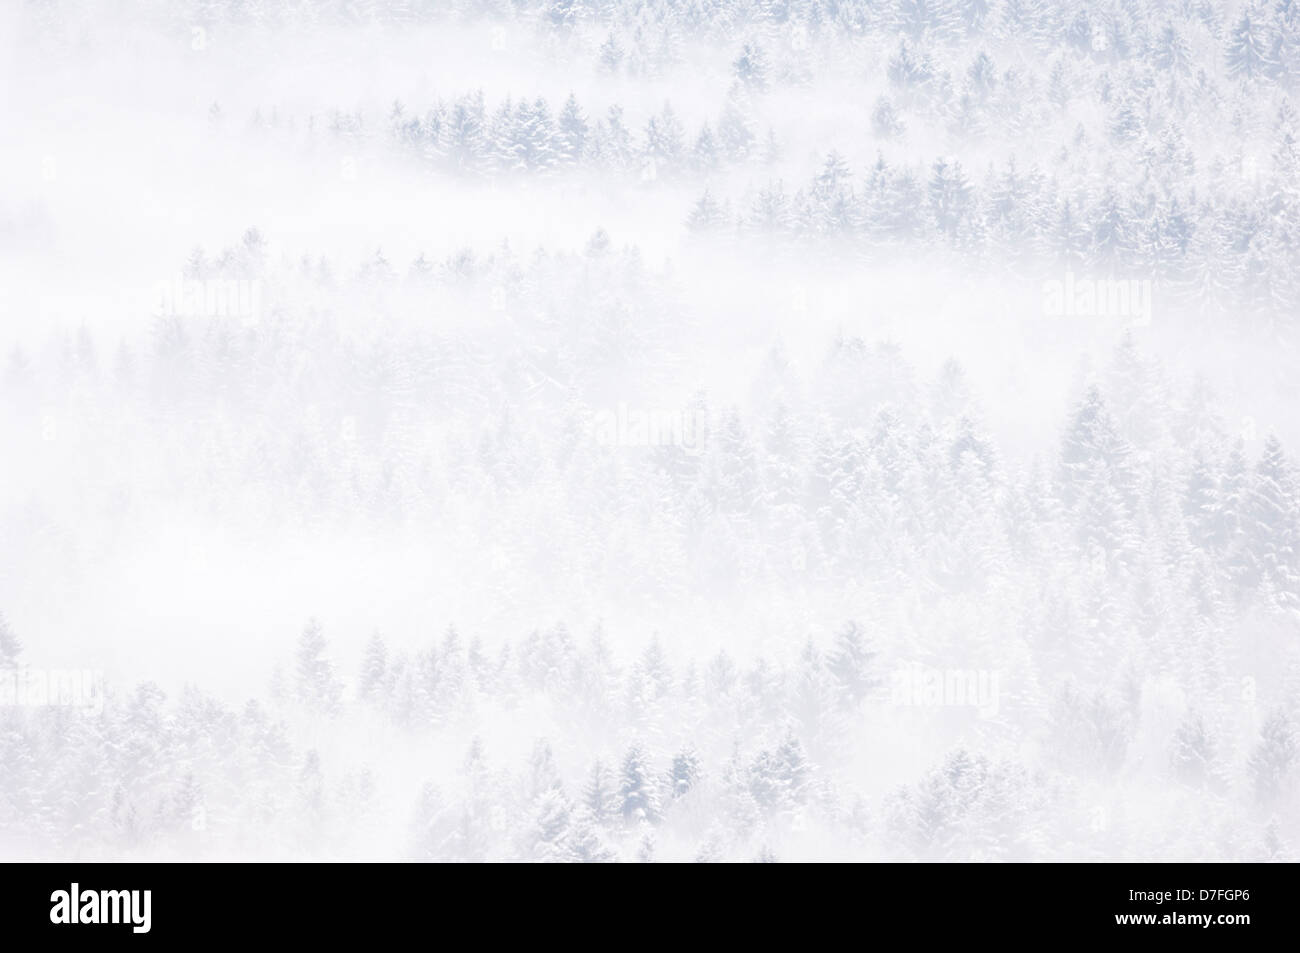 View on a snow covered pine forest in winter, with fog, Haute Savoie, France. Stock Photo